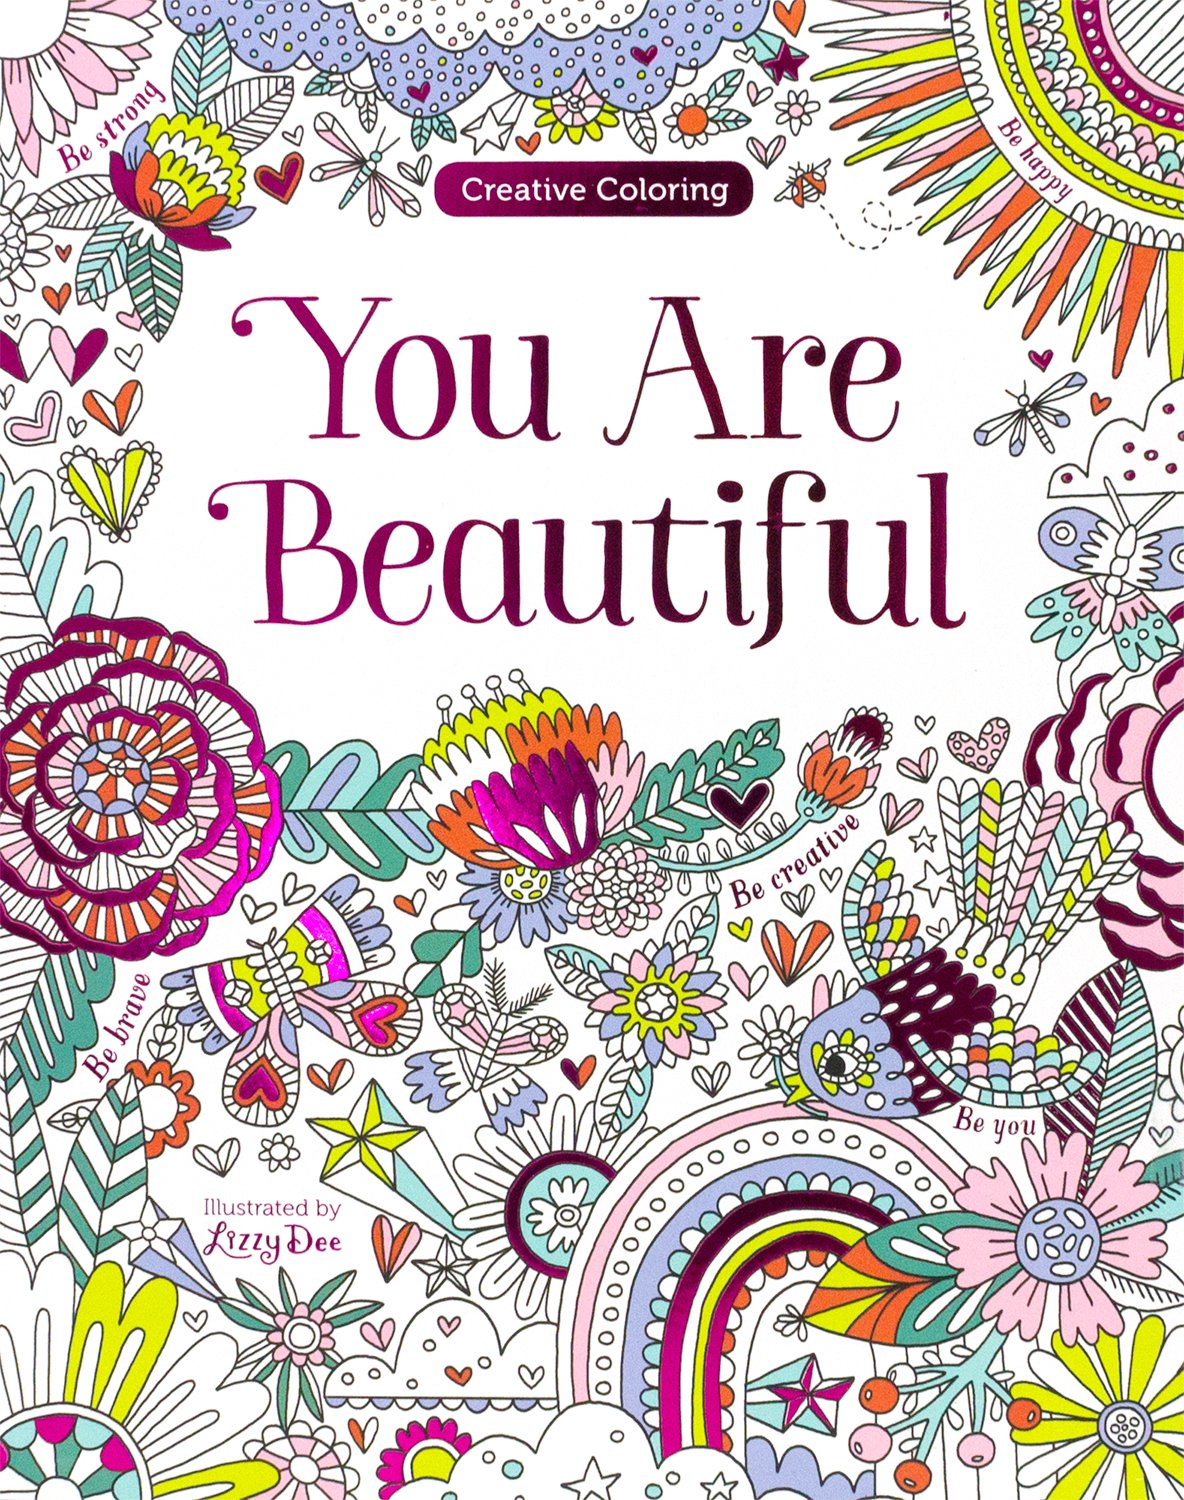 Unusual Best Coloring Books For Adults Tiny Blue Is The Warmest Color Book Regular Giant Coloring Books Coloring Book App Young Gangsta Rap Coloring Book RedBible Coloring Book You Are Beautiful (Creative Coloring): Parragon: 9781474845441 ..